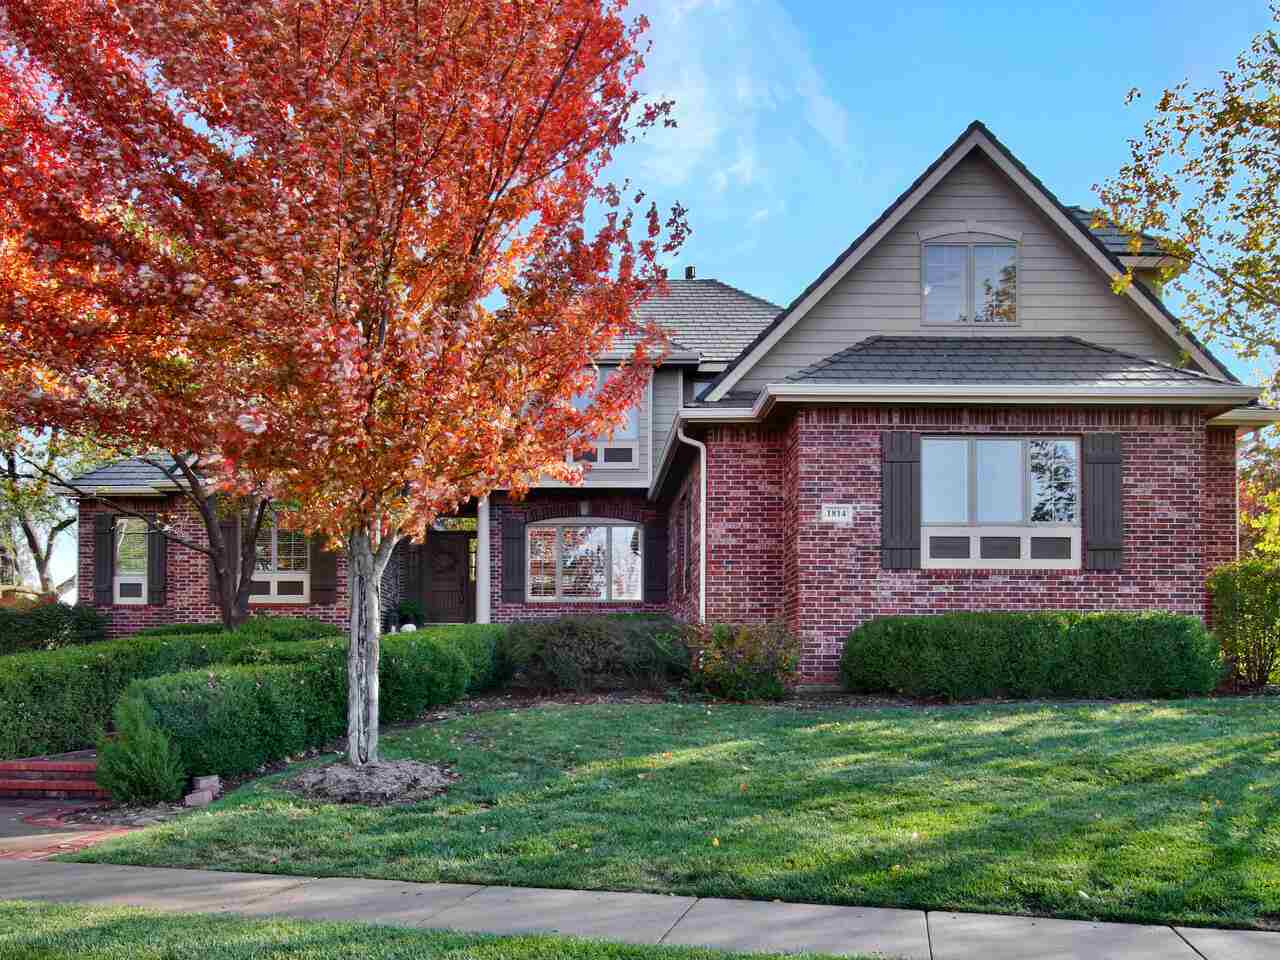 Welcome Home to this warm and inviting 1 1/2 story situated on a beautifully landscaped over half an